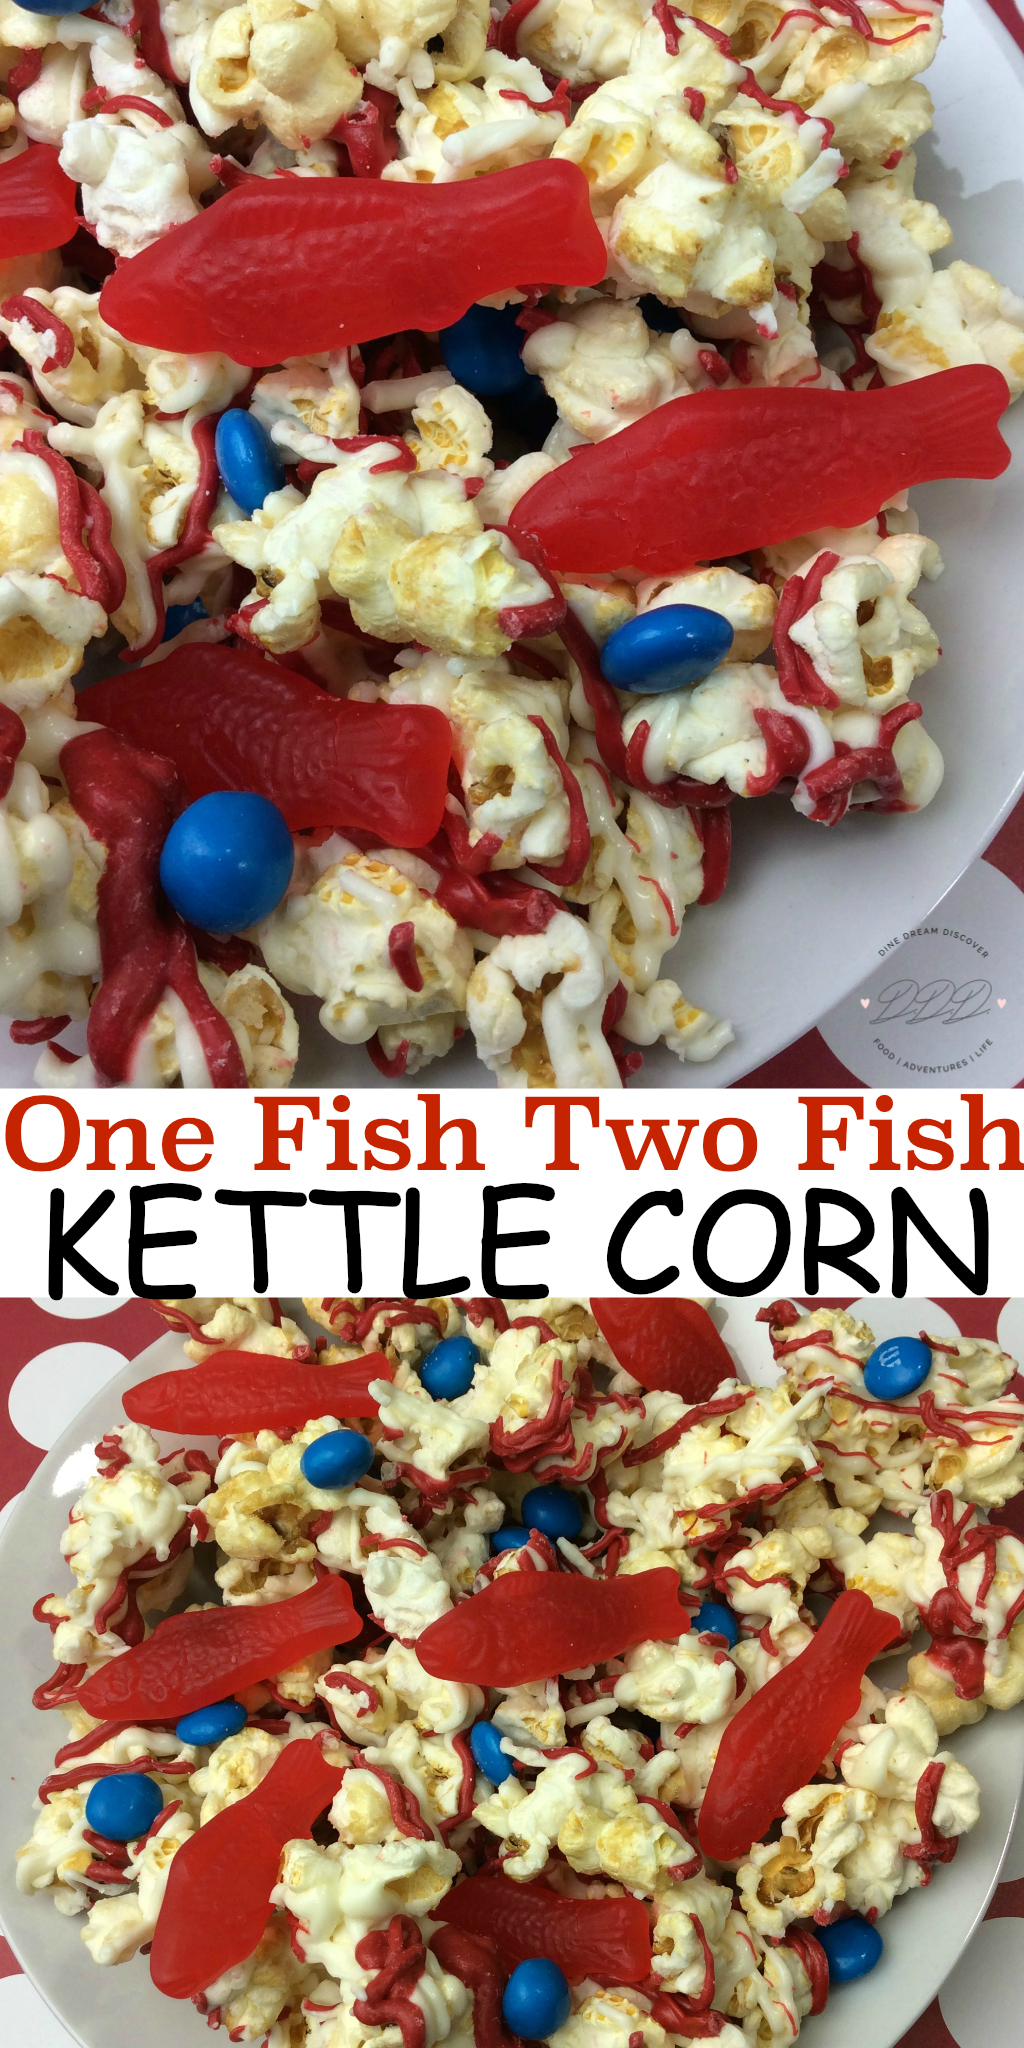 Whether we are sharing One Fish Two Fish Dr. Seuss Kettle Corn <a href=